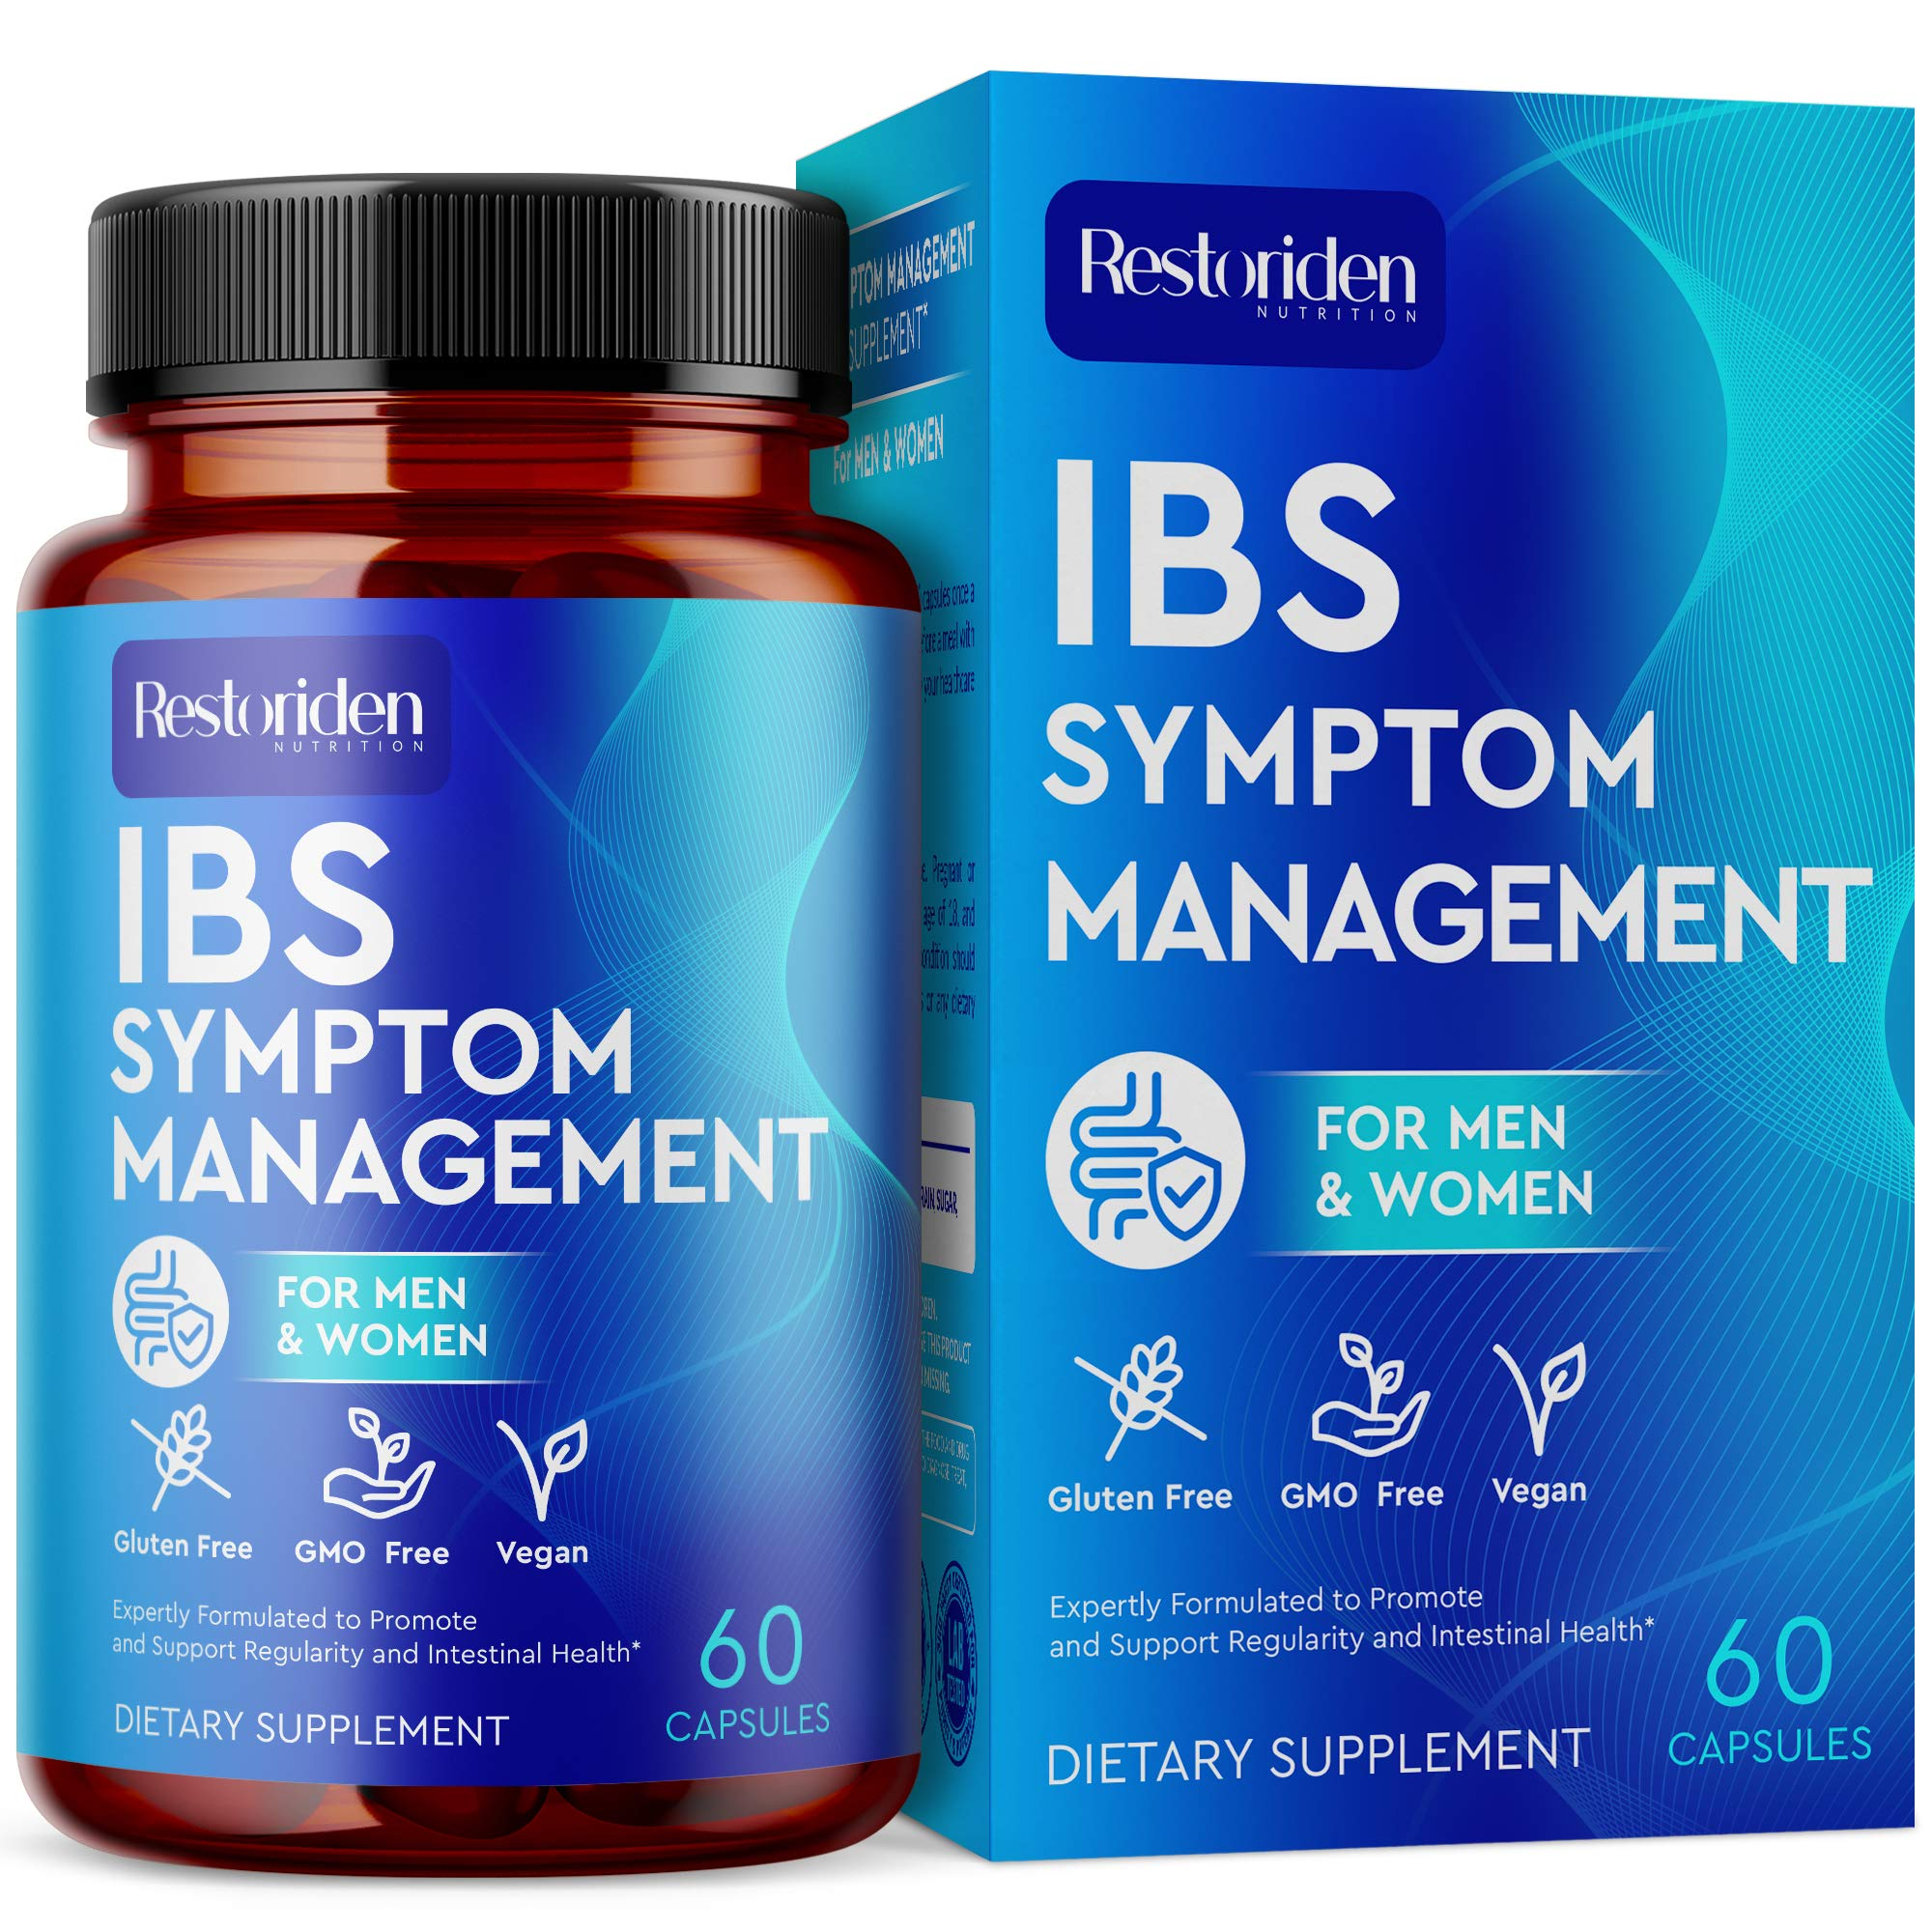 Restoriden IBS Symptom Management Supplement - Stomach Cleansing Herbal Blend - Vitamins May Support with Cramps, Abdominal Pain, Bloating, Gas, Diarrhea, Constipation Relief - 60 Capsules